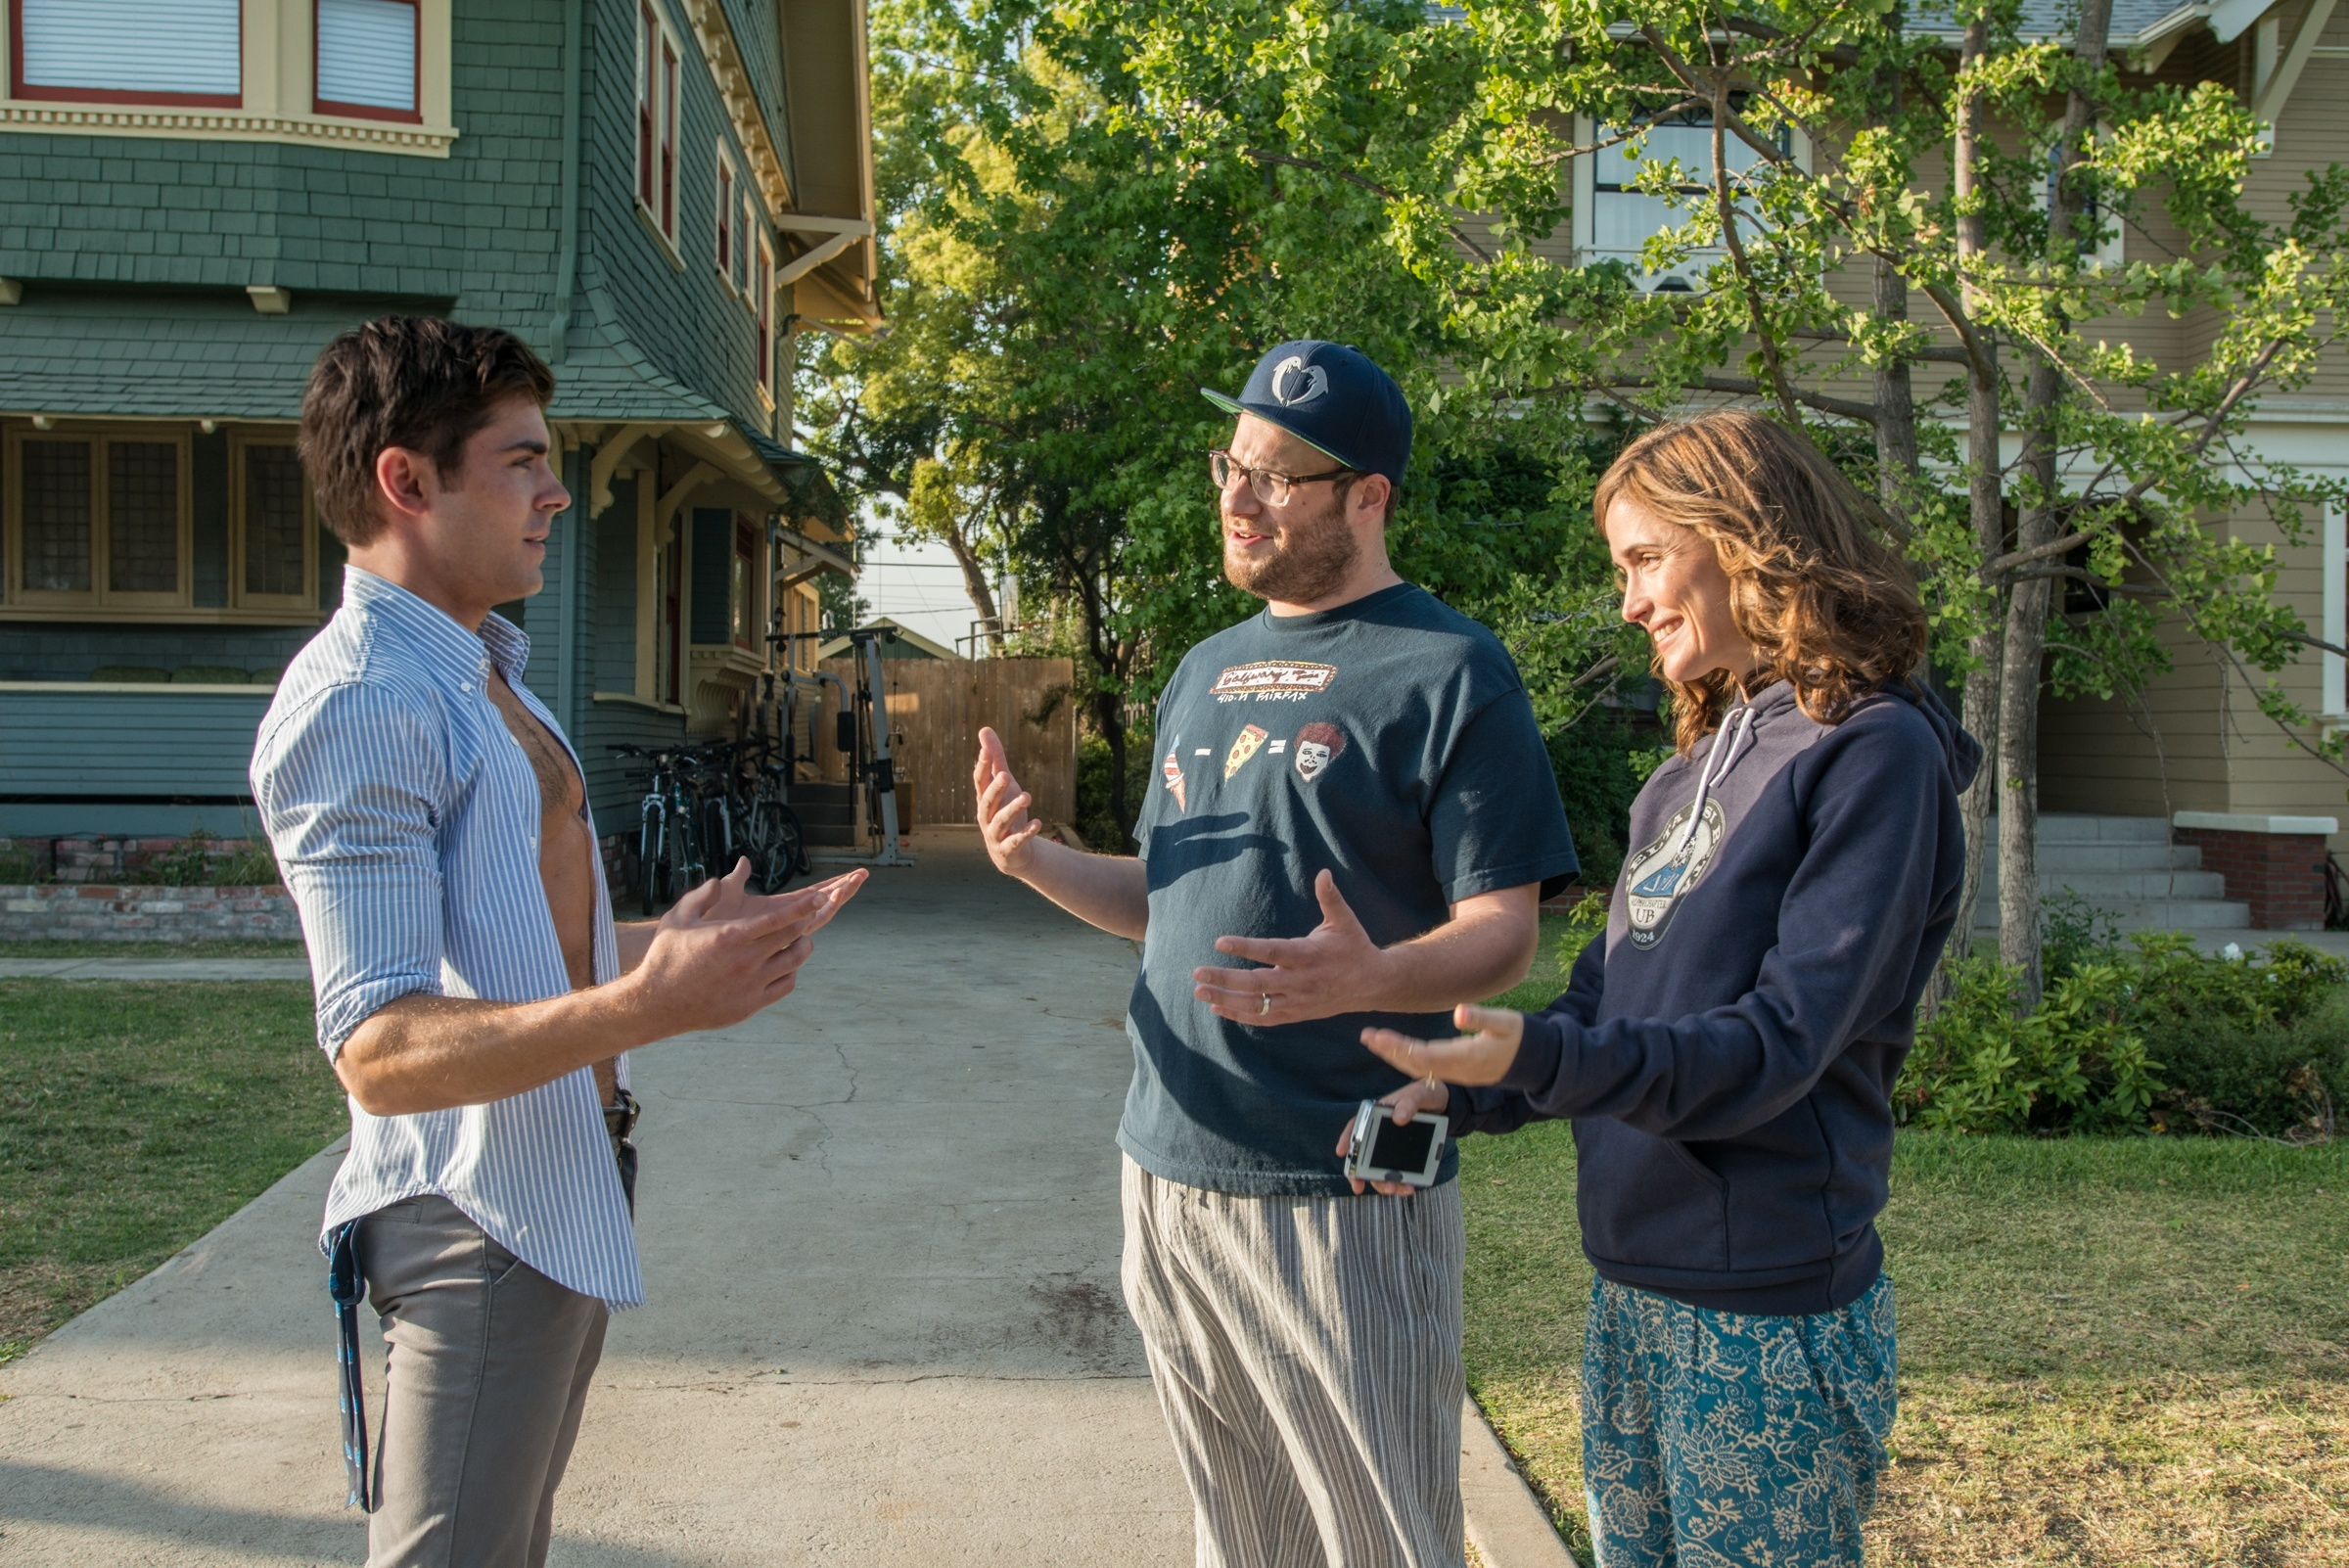 zac efron back neighbors 2 with seth rogen and rose byrne 2015 images